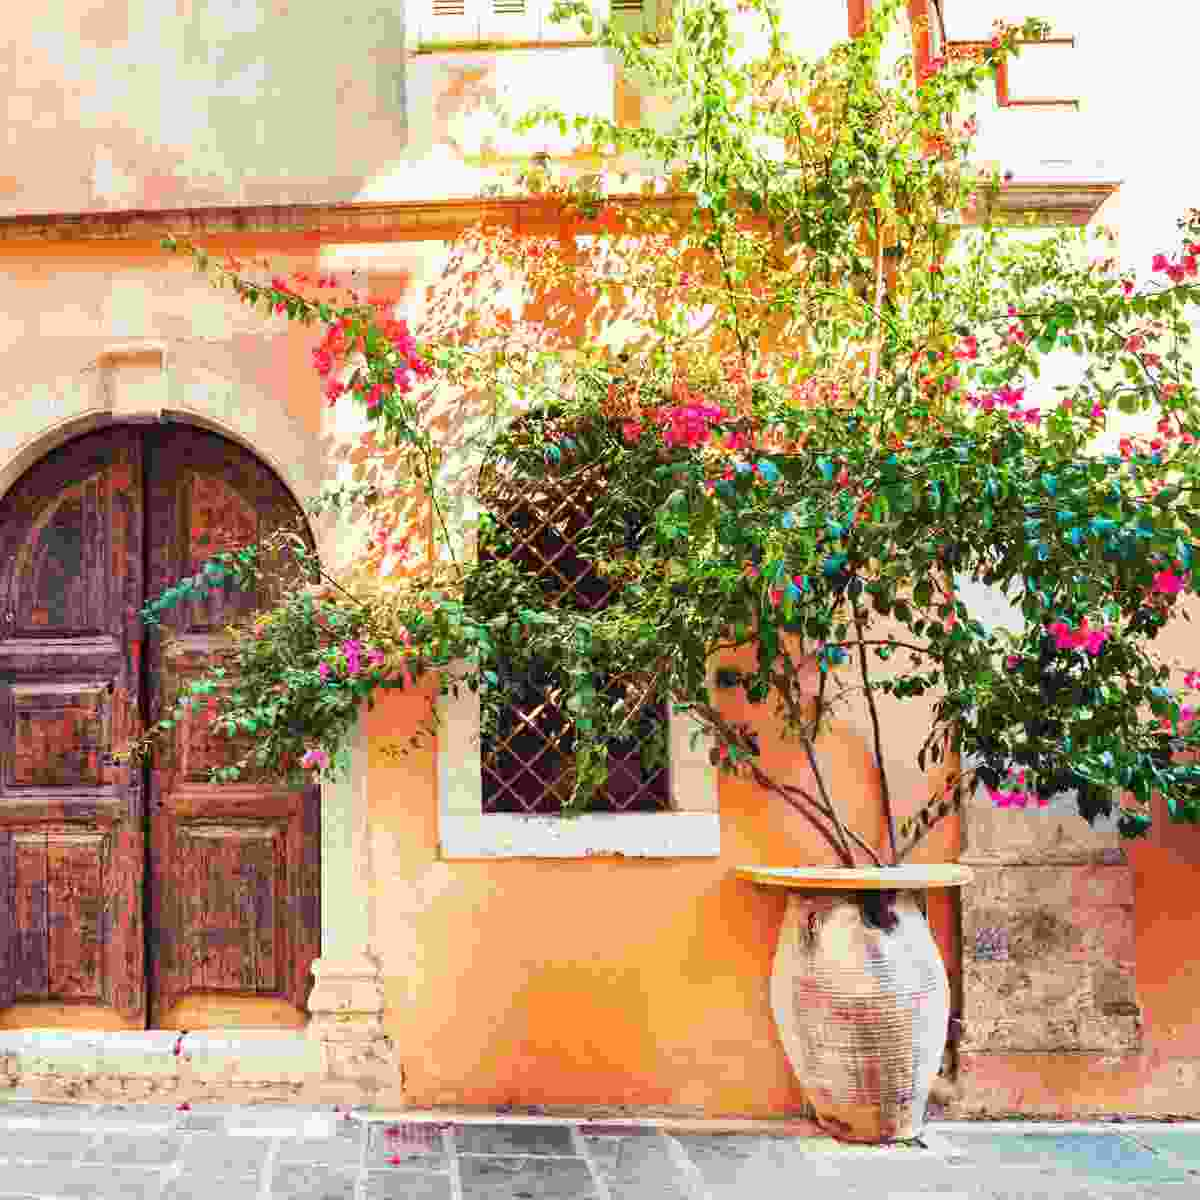 A full guide to Chania